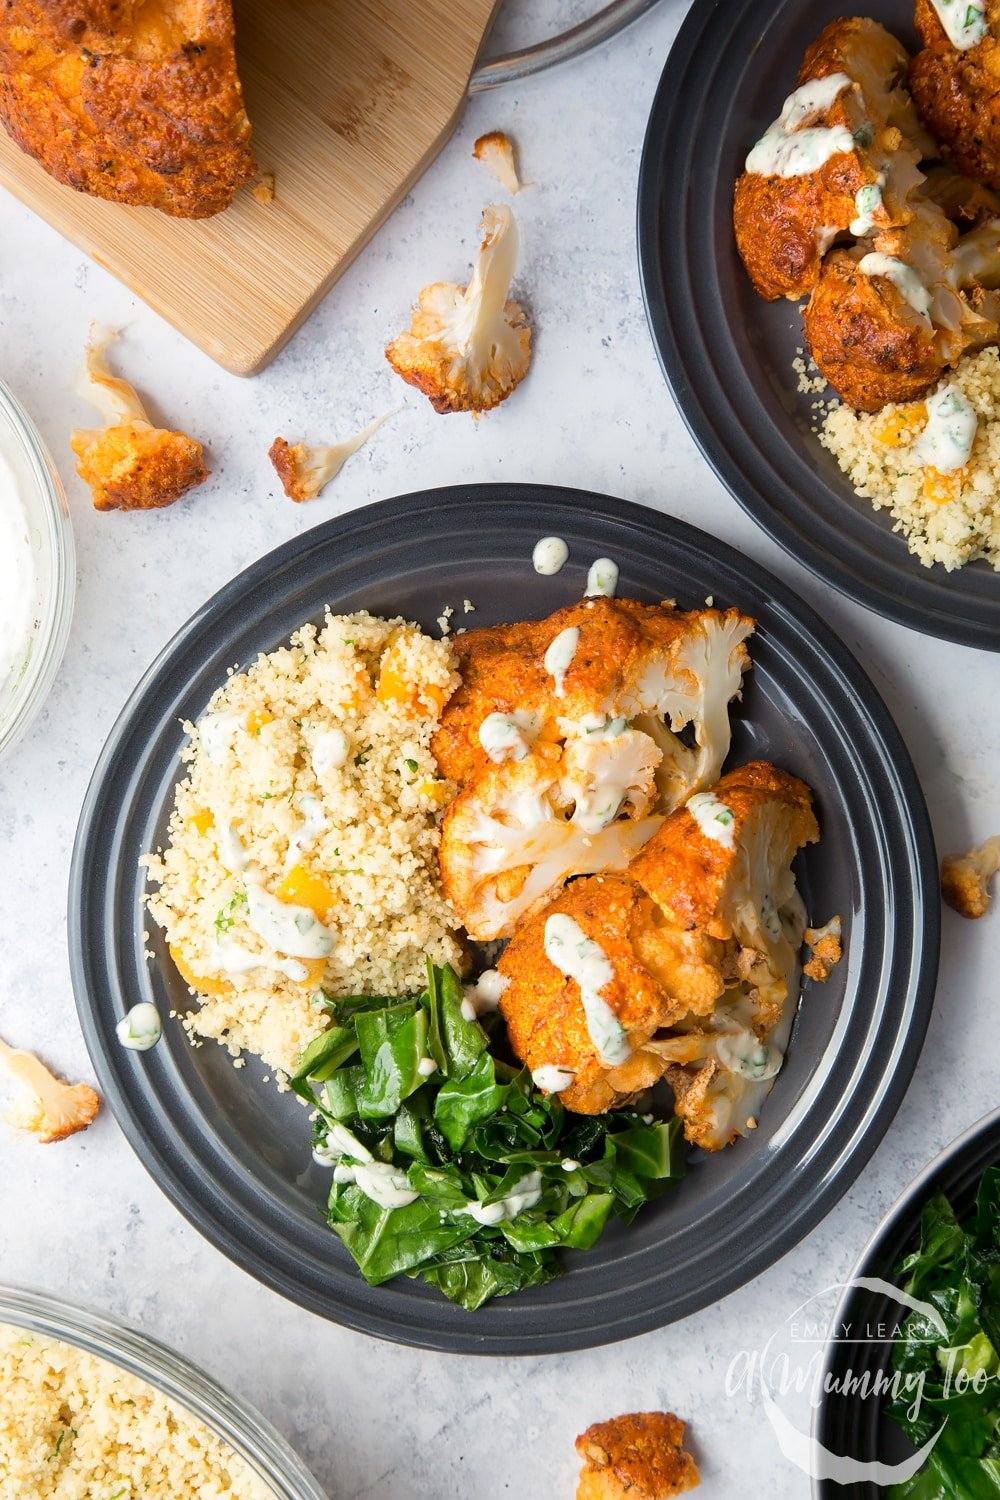 Harissa roasted cauliflower served with couscous, spring greens and drizzled with a lemon tahini sauce